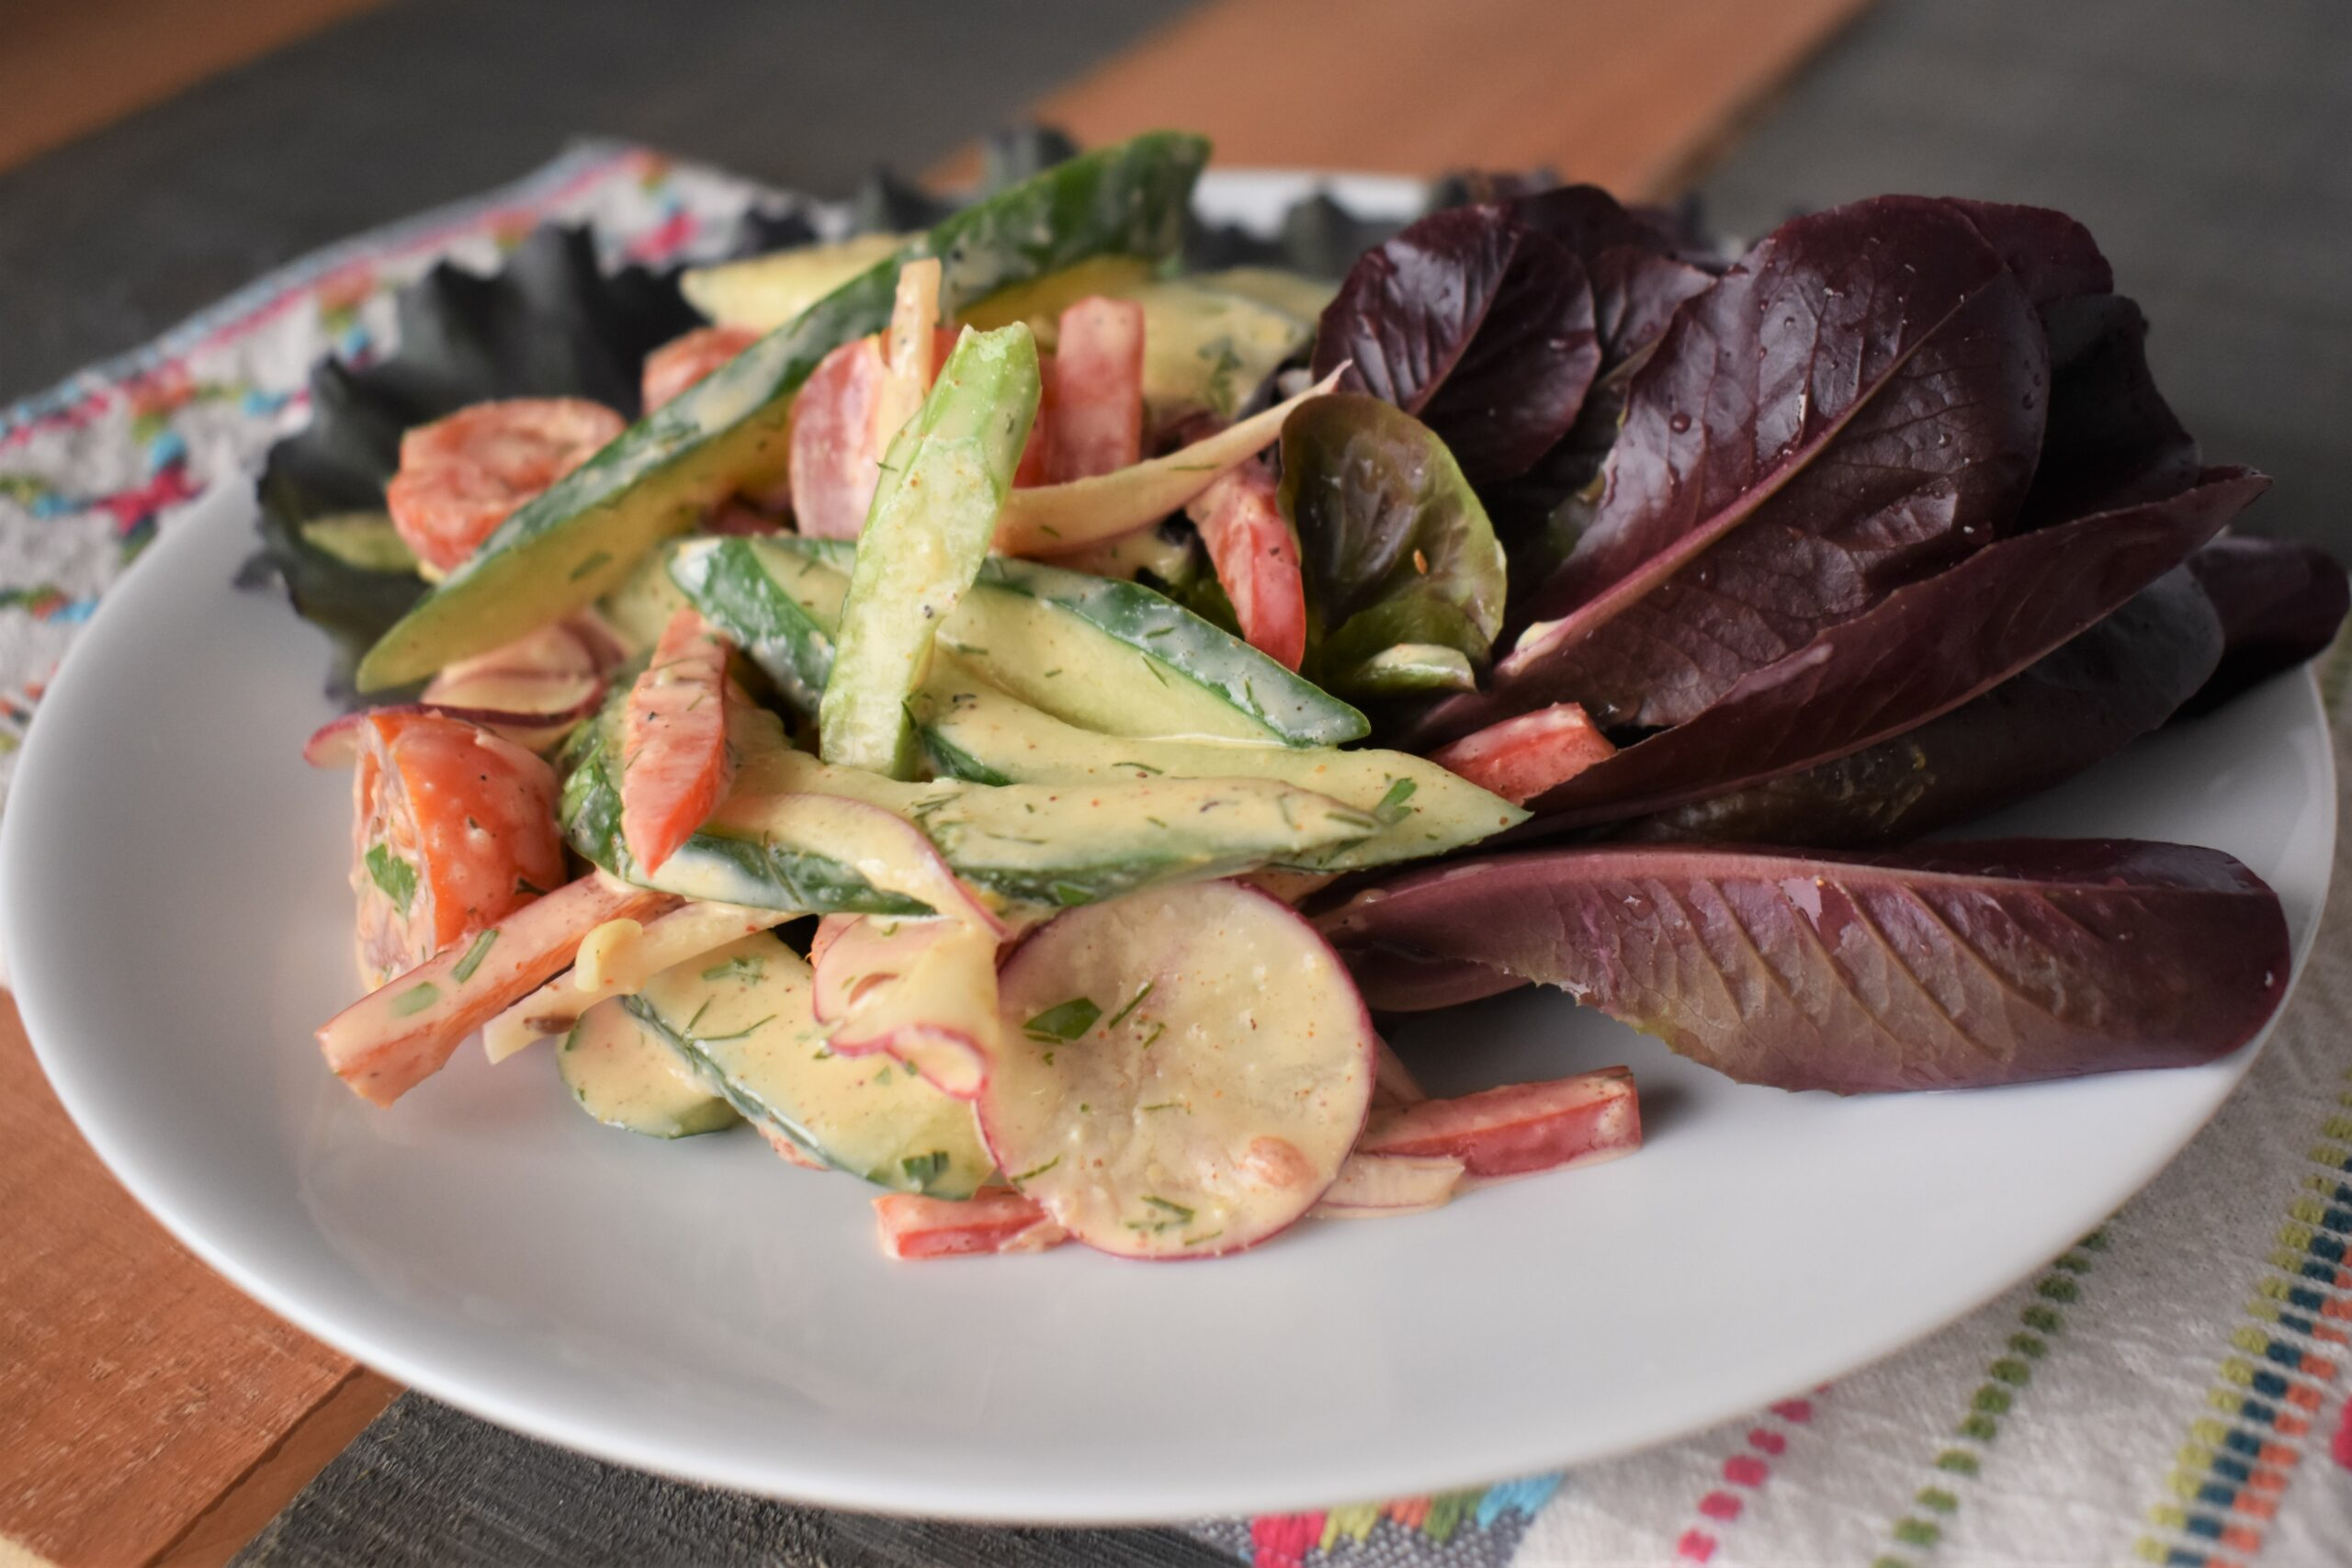 Cucumber Salad with Lemon Dill Dressing